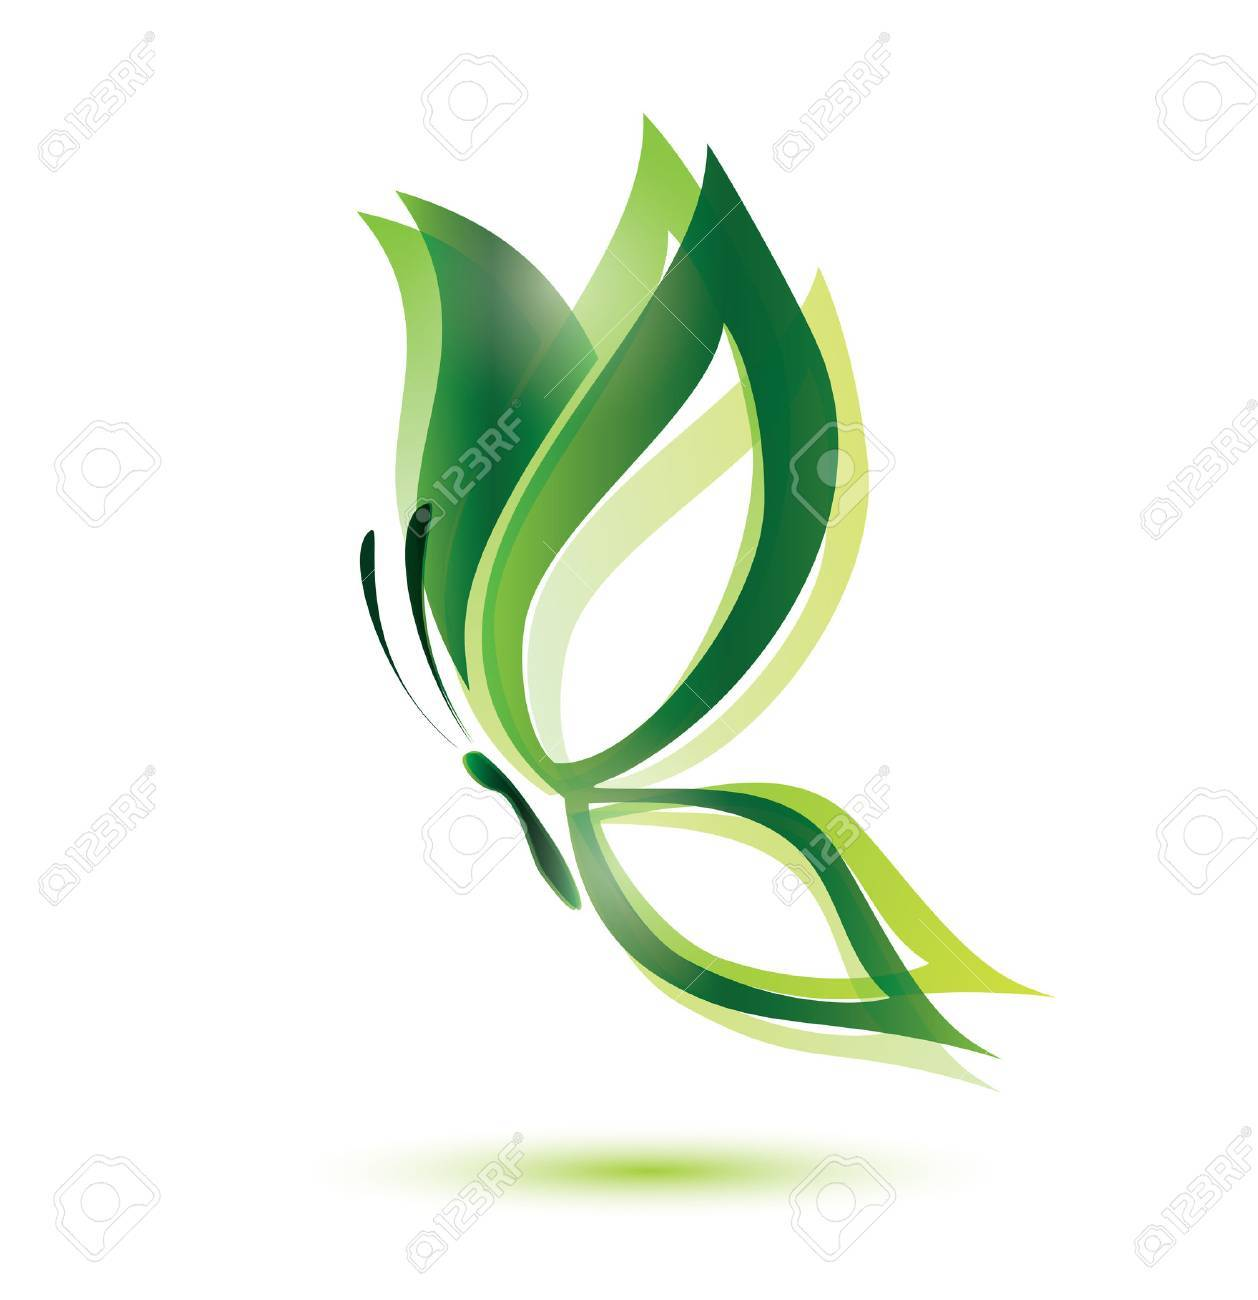 Green butterfly ecology concept isolated symbol royalty free green butterfly ecology concept isolated symbol stock vector 22348491 biocorpaavc Image collections